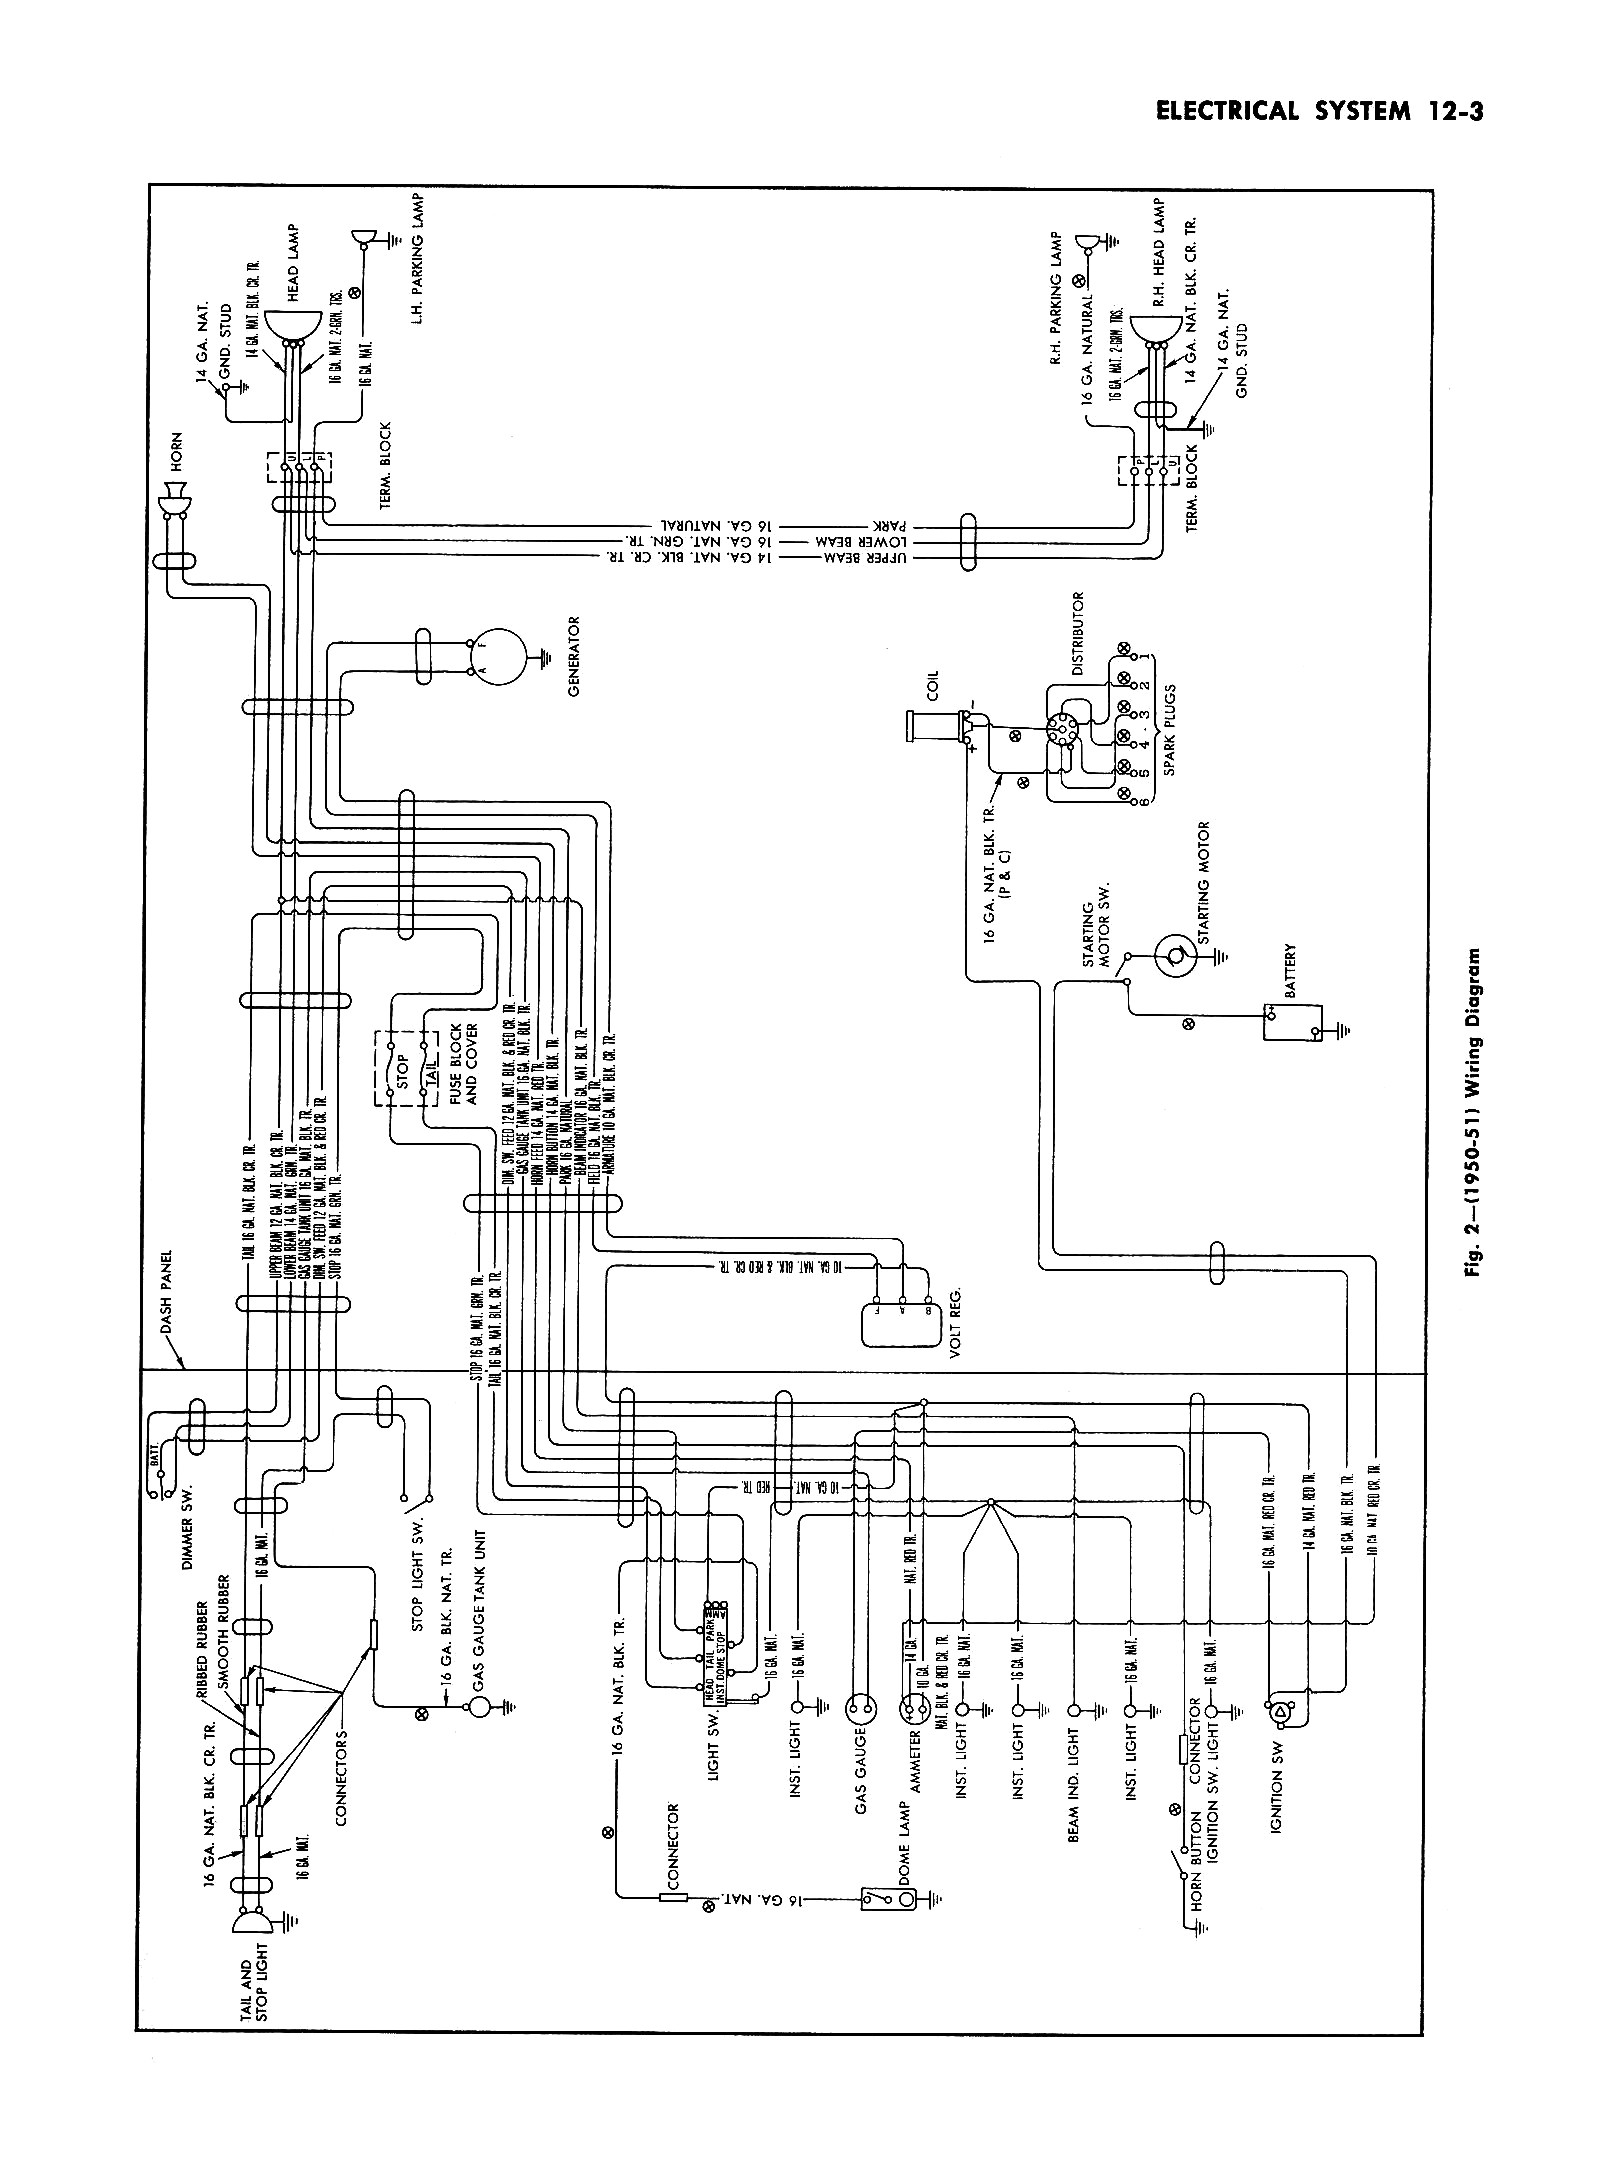 ford wiring diagram besides 1950 ford wiring diagram likewise 1948 rh abetter pw